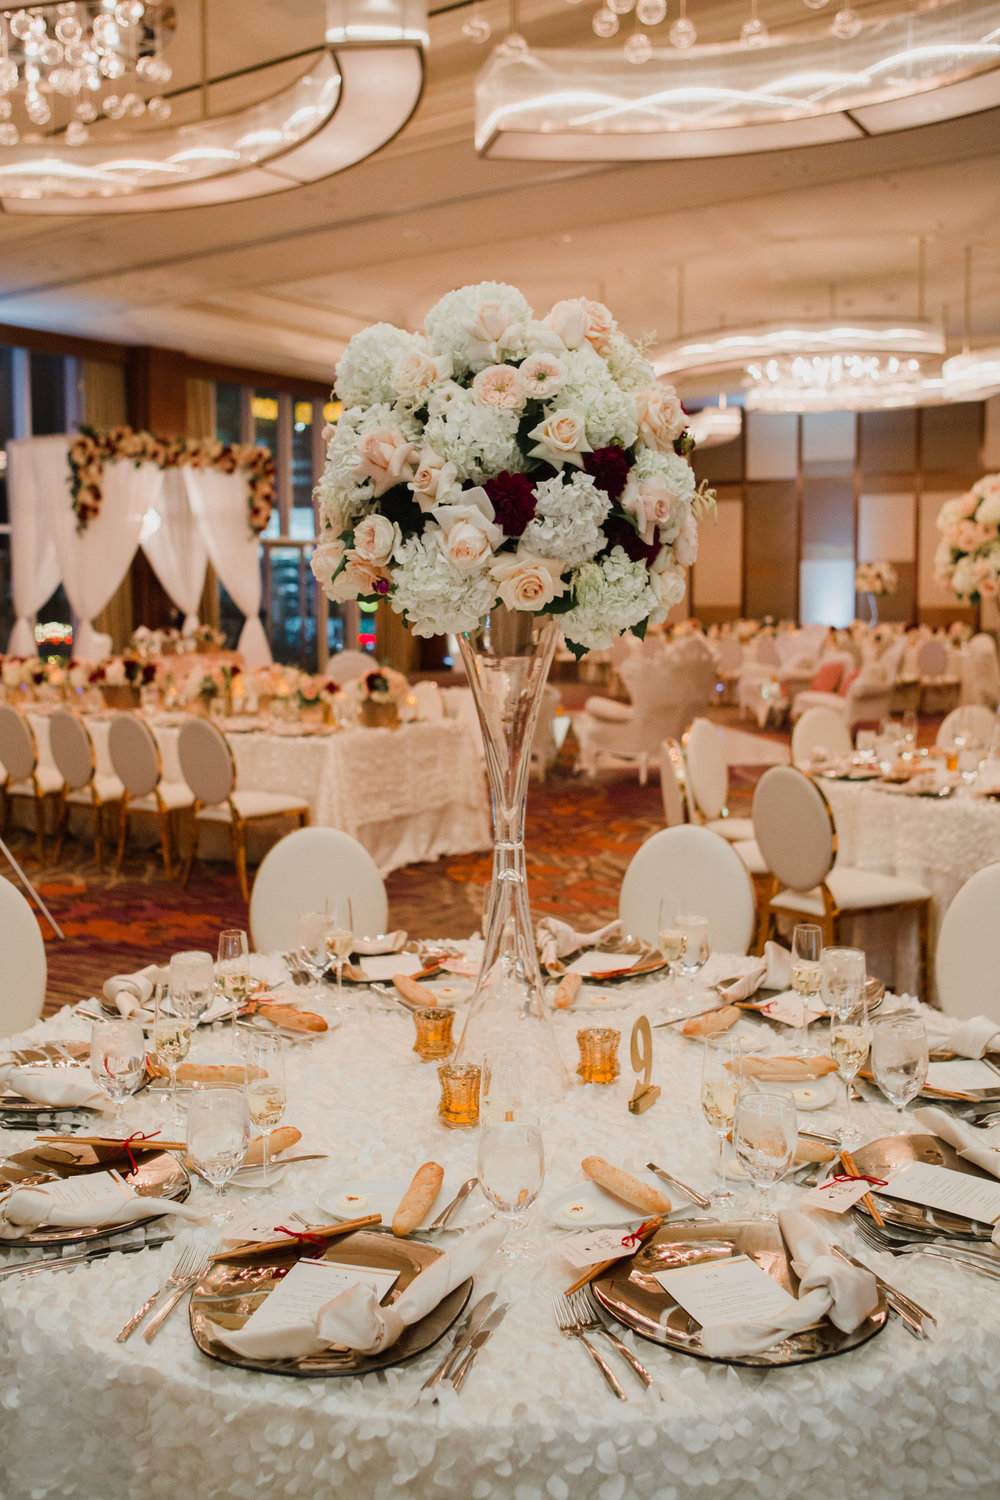 Ivory large centerpieces with dark red pops of color.  Luxury wedding at the Mandarin Oriental with a color scheme of white, blush, and pops of wine red produced by Las Vegas Wedding Planner Andrea Eppolito with photos by Stephen Salazar Photography.